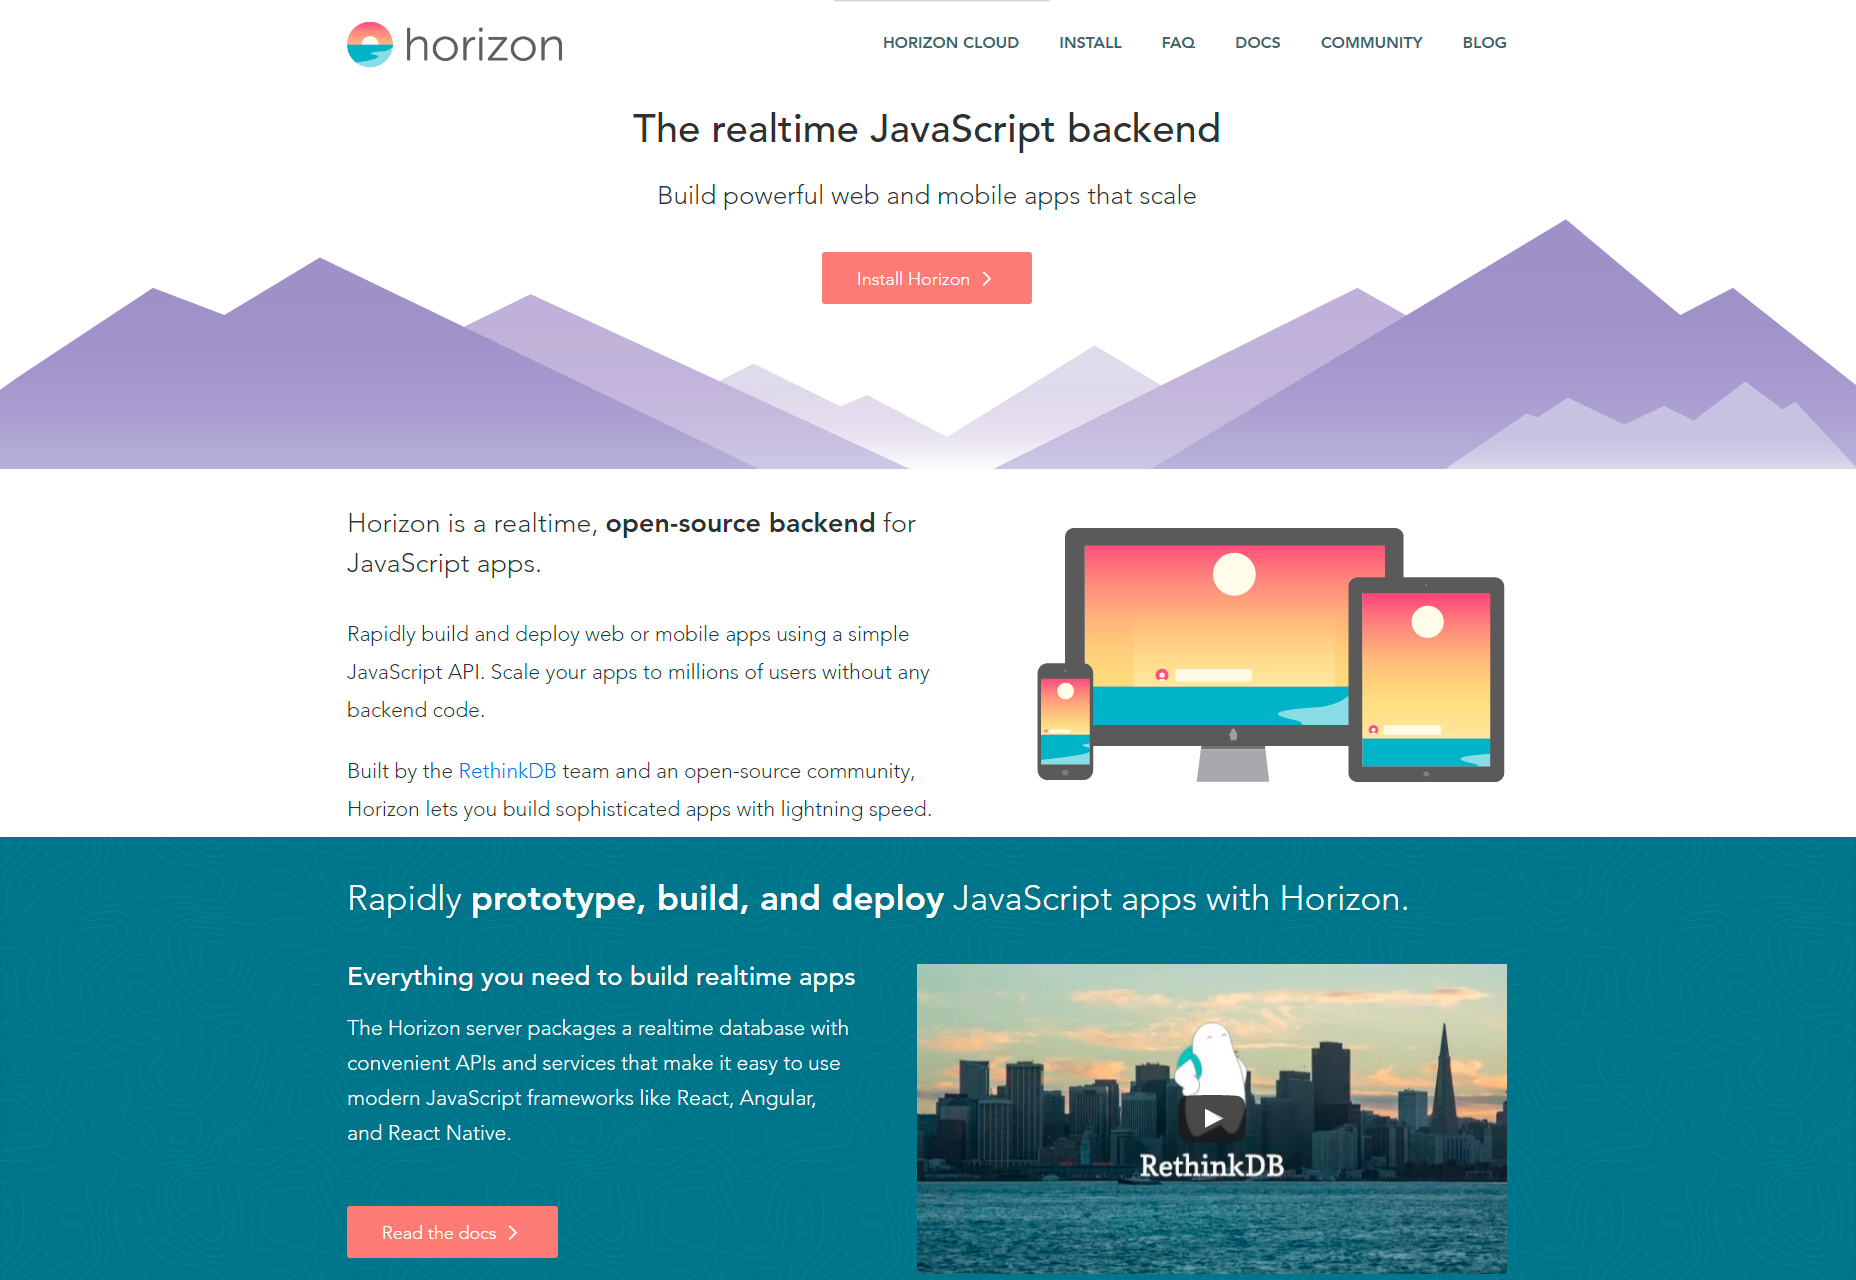 Horizon: Realtime Open-source JavaScript Backend